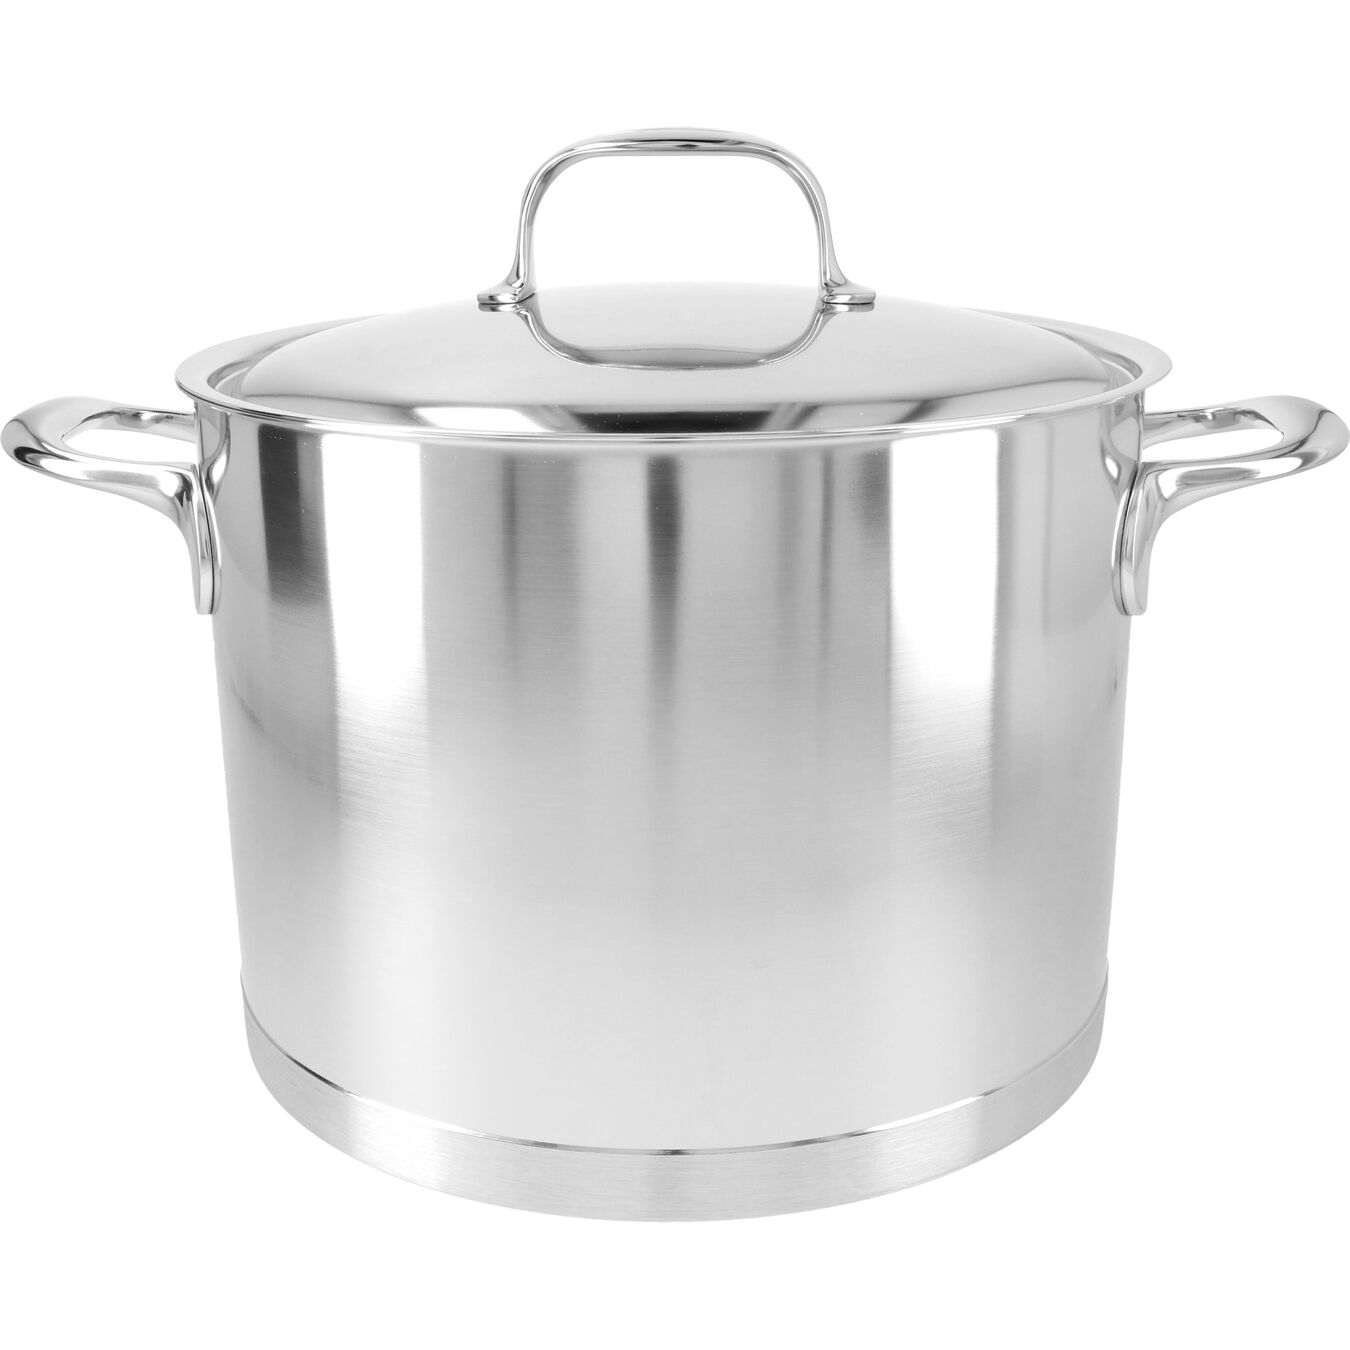 8 l 18/10 Stainless Steel Stock pot with lid,,large 1